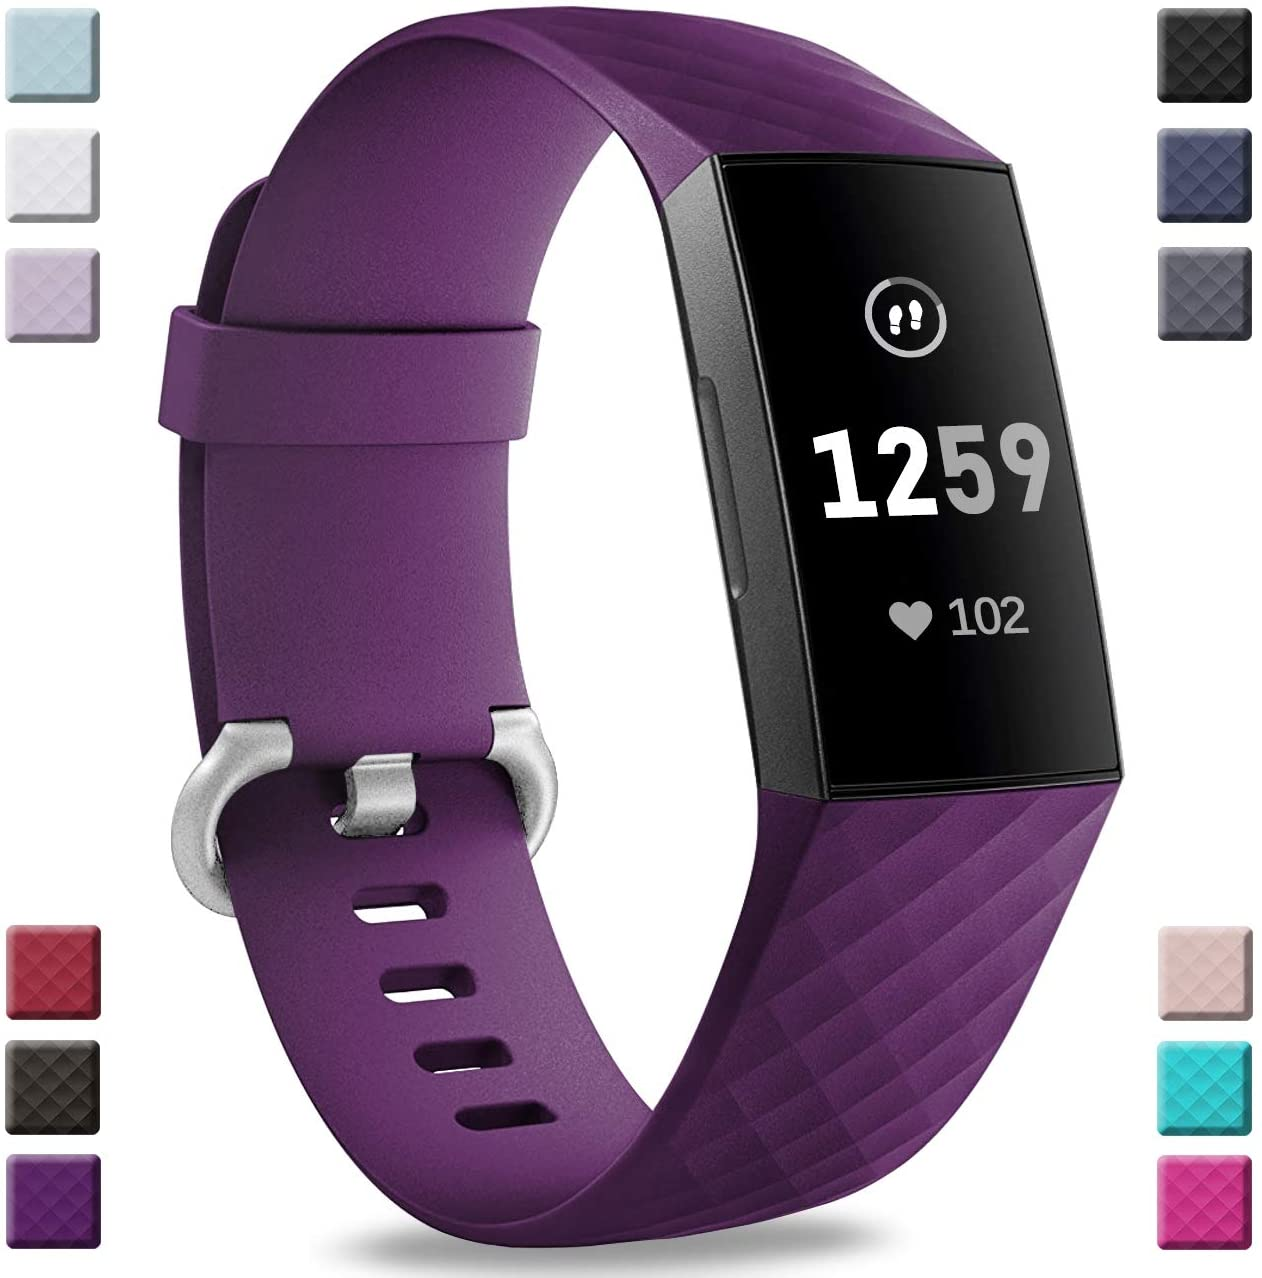 Hamile Bands Compatible with Fitbit Charge 4 / Fitbit Charge 3 / Fitbit Charge 3 SE, Waterproof Replacement Watch Strap Fitness Sport Band Wristband for Women Men, Small, Plum